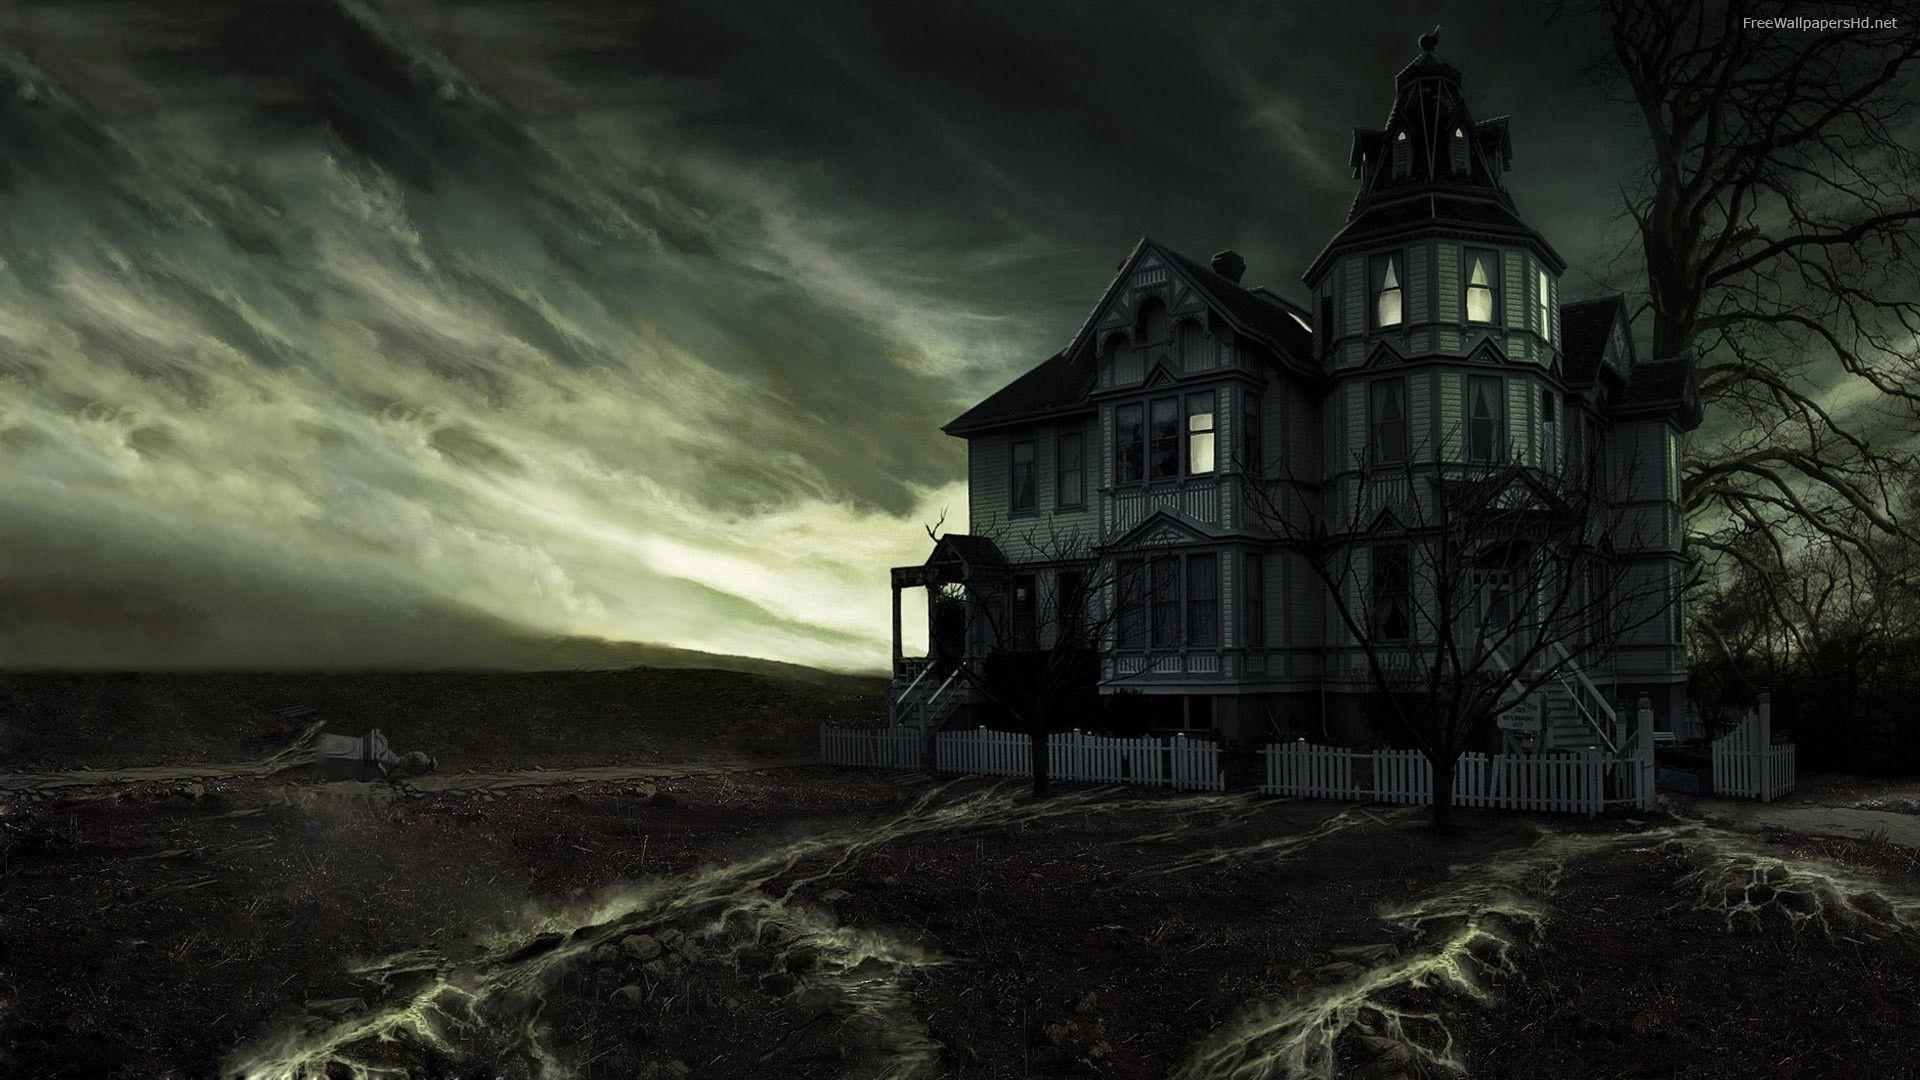 Haunted Mansion Desktop Wallpaper Haunted House Backgrou...